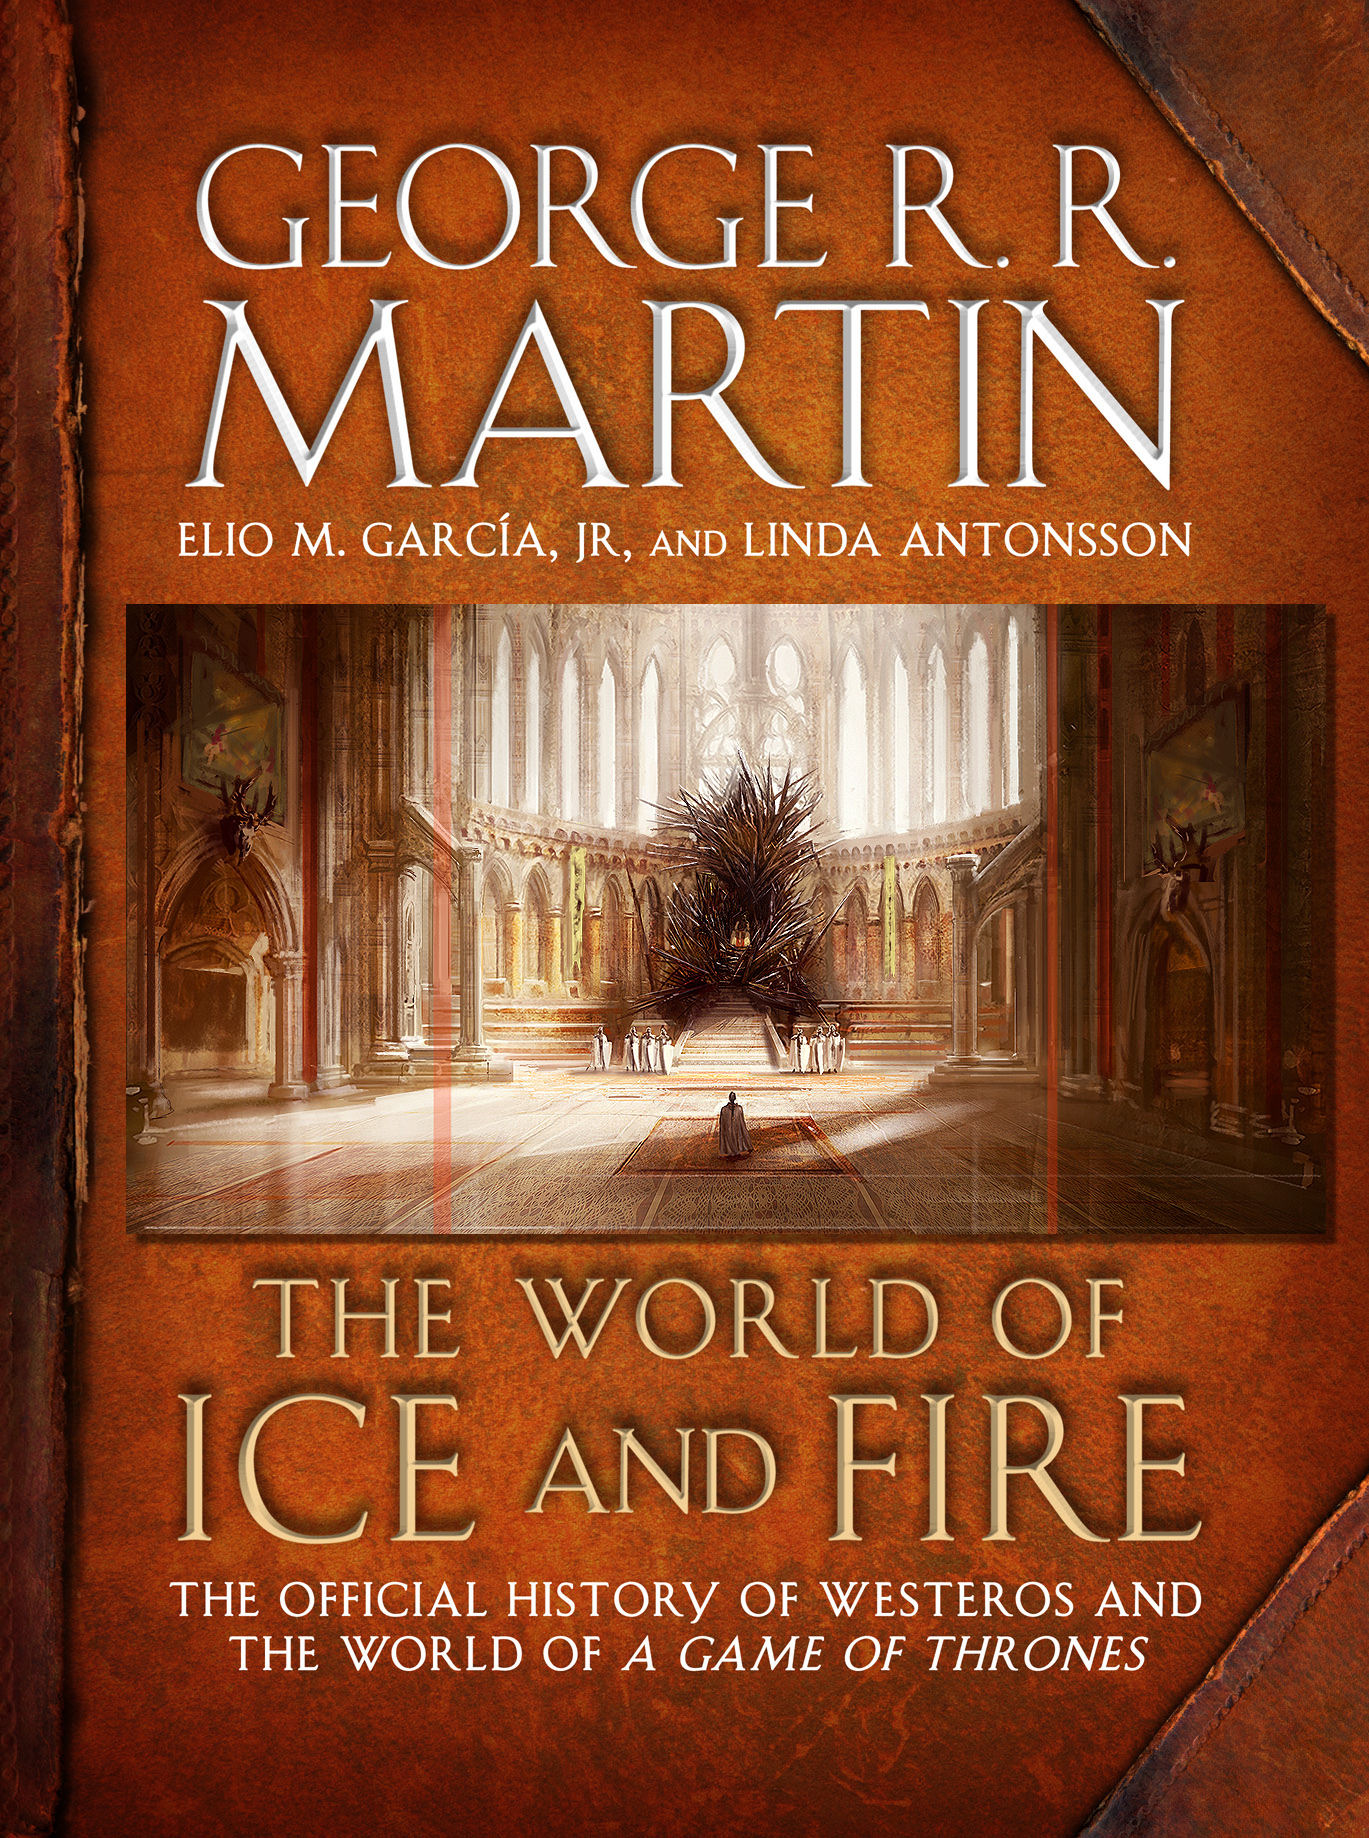 George Rr Martin Libros Game Of Thrones George Rr Martin The World Of Ice And Fire The Untold